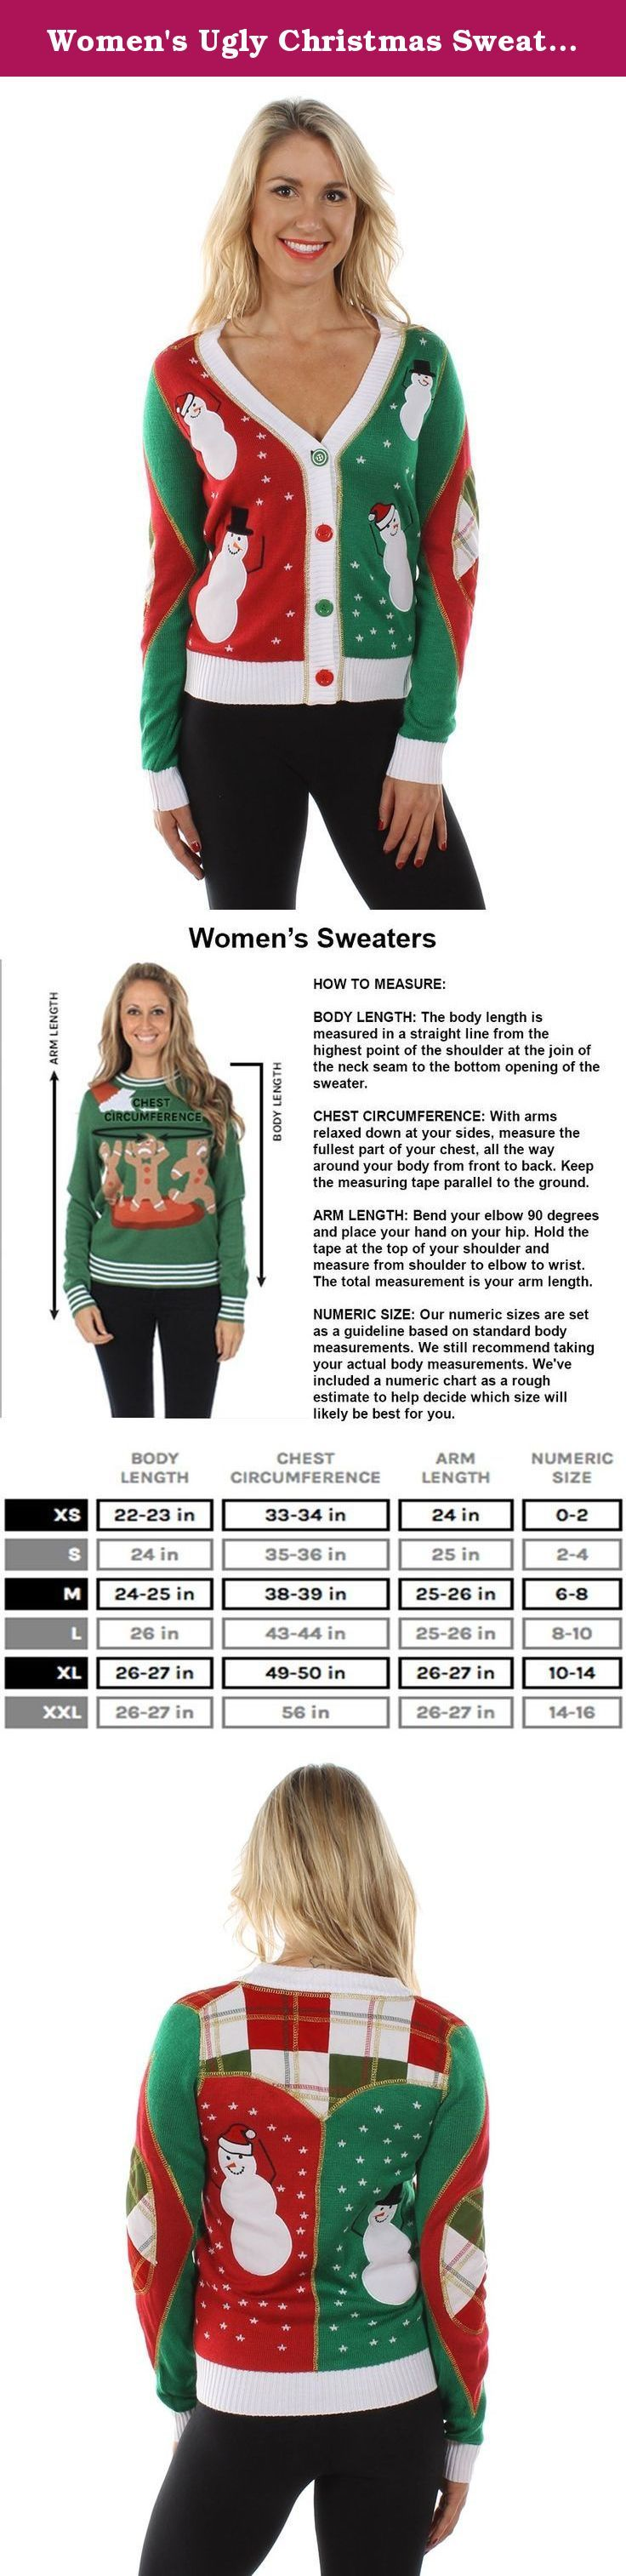 Women's Ugly Christmas Sweater - Snowmen Dancing Cardigan L. Tipsy Elves Christmas Sweaters are perfect for your Ugly Christmas Sweater party, holiday pub crawls, the ski cabin, and they always make a great gift!. Our Christmas Sweaters are featured on ABC's Shark Tank, the TODAY Show, ABC's Wipeout!, People Magazine, Trendhunter, and much more!. See all of Tipsy Elves' Funny Christmas sweaters sold right here on Amazon. Shop over 50 exclusive designs for men and women! All ugly sweaters…